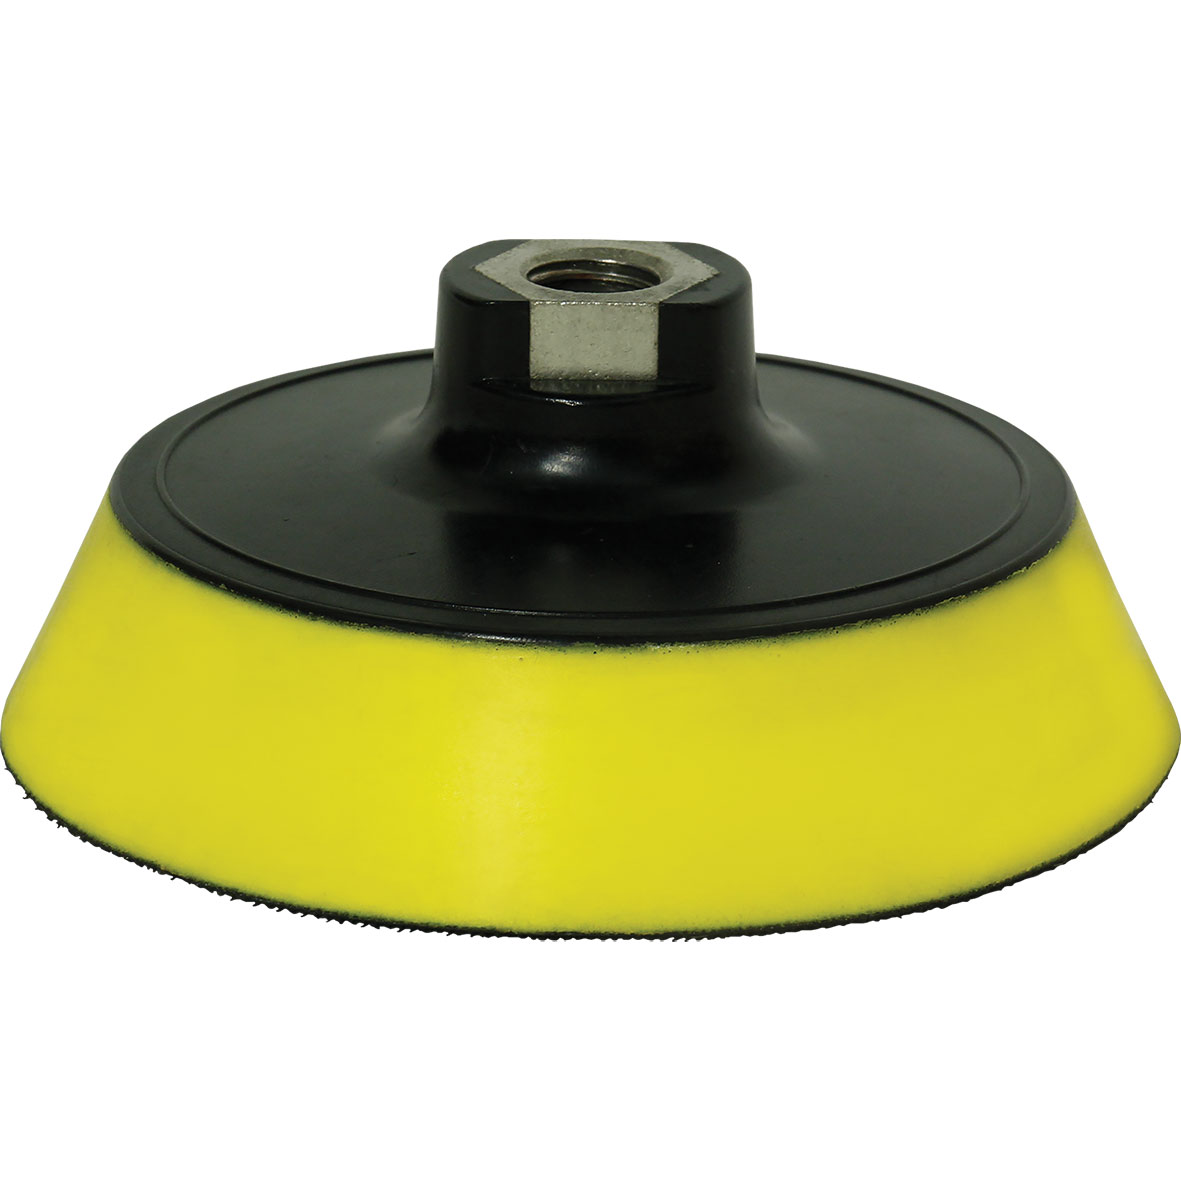 "G Mop Back Plate with Yellow Interface Pad for 6"" Pads"